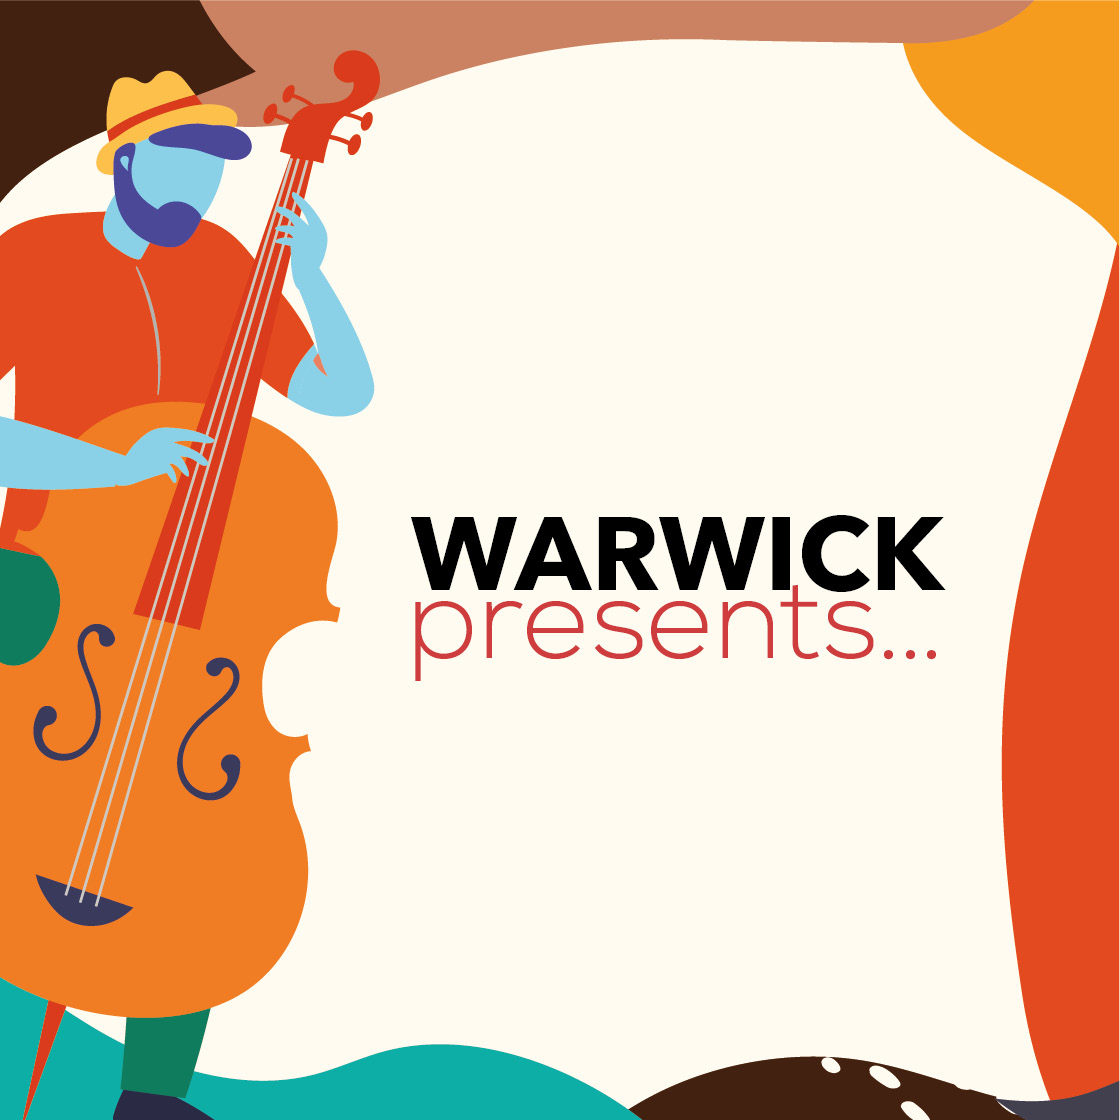 Did you know that we have lots of exciting events and activities happening on campus every week for Warwick students?   Check out the full Warwick Presents programme at https://t.co/Nt6rBqfwVS https://t.co/TYo6xmW7Bw